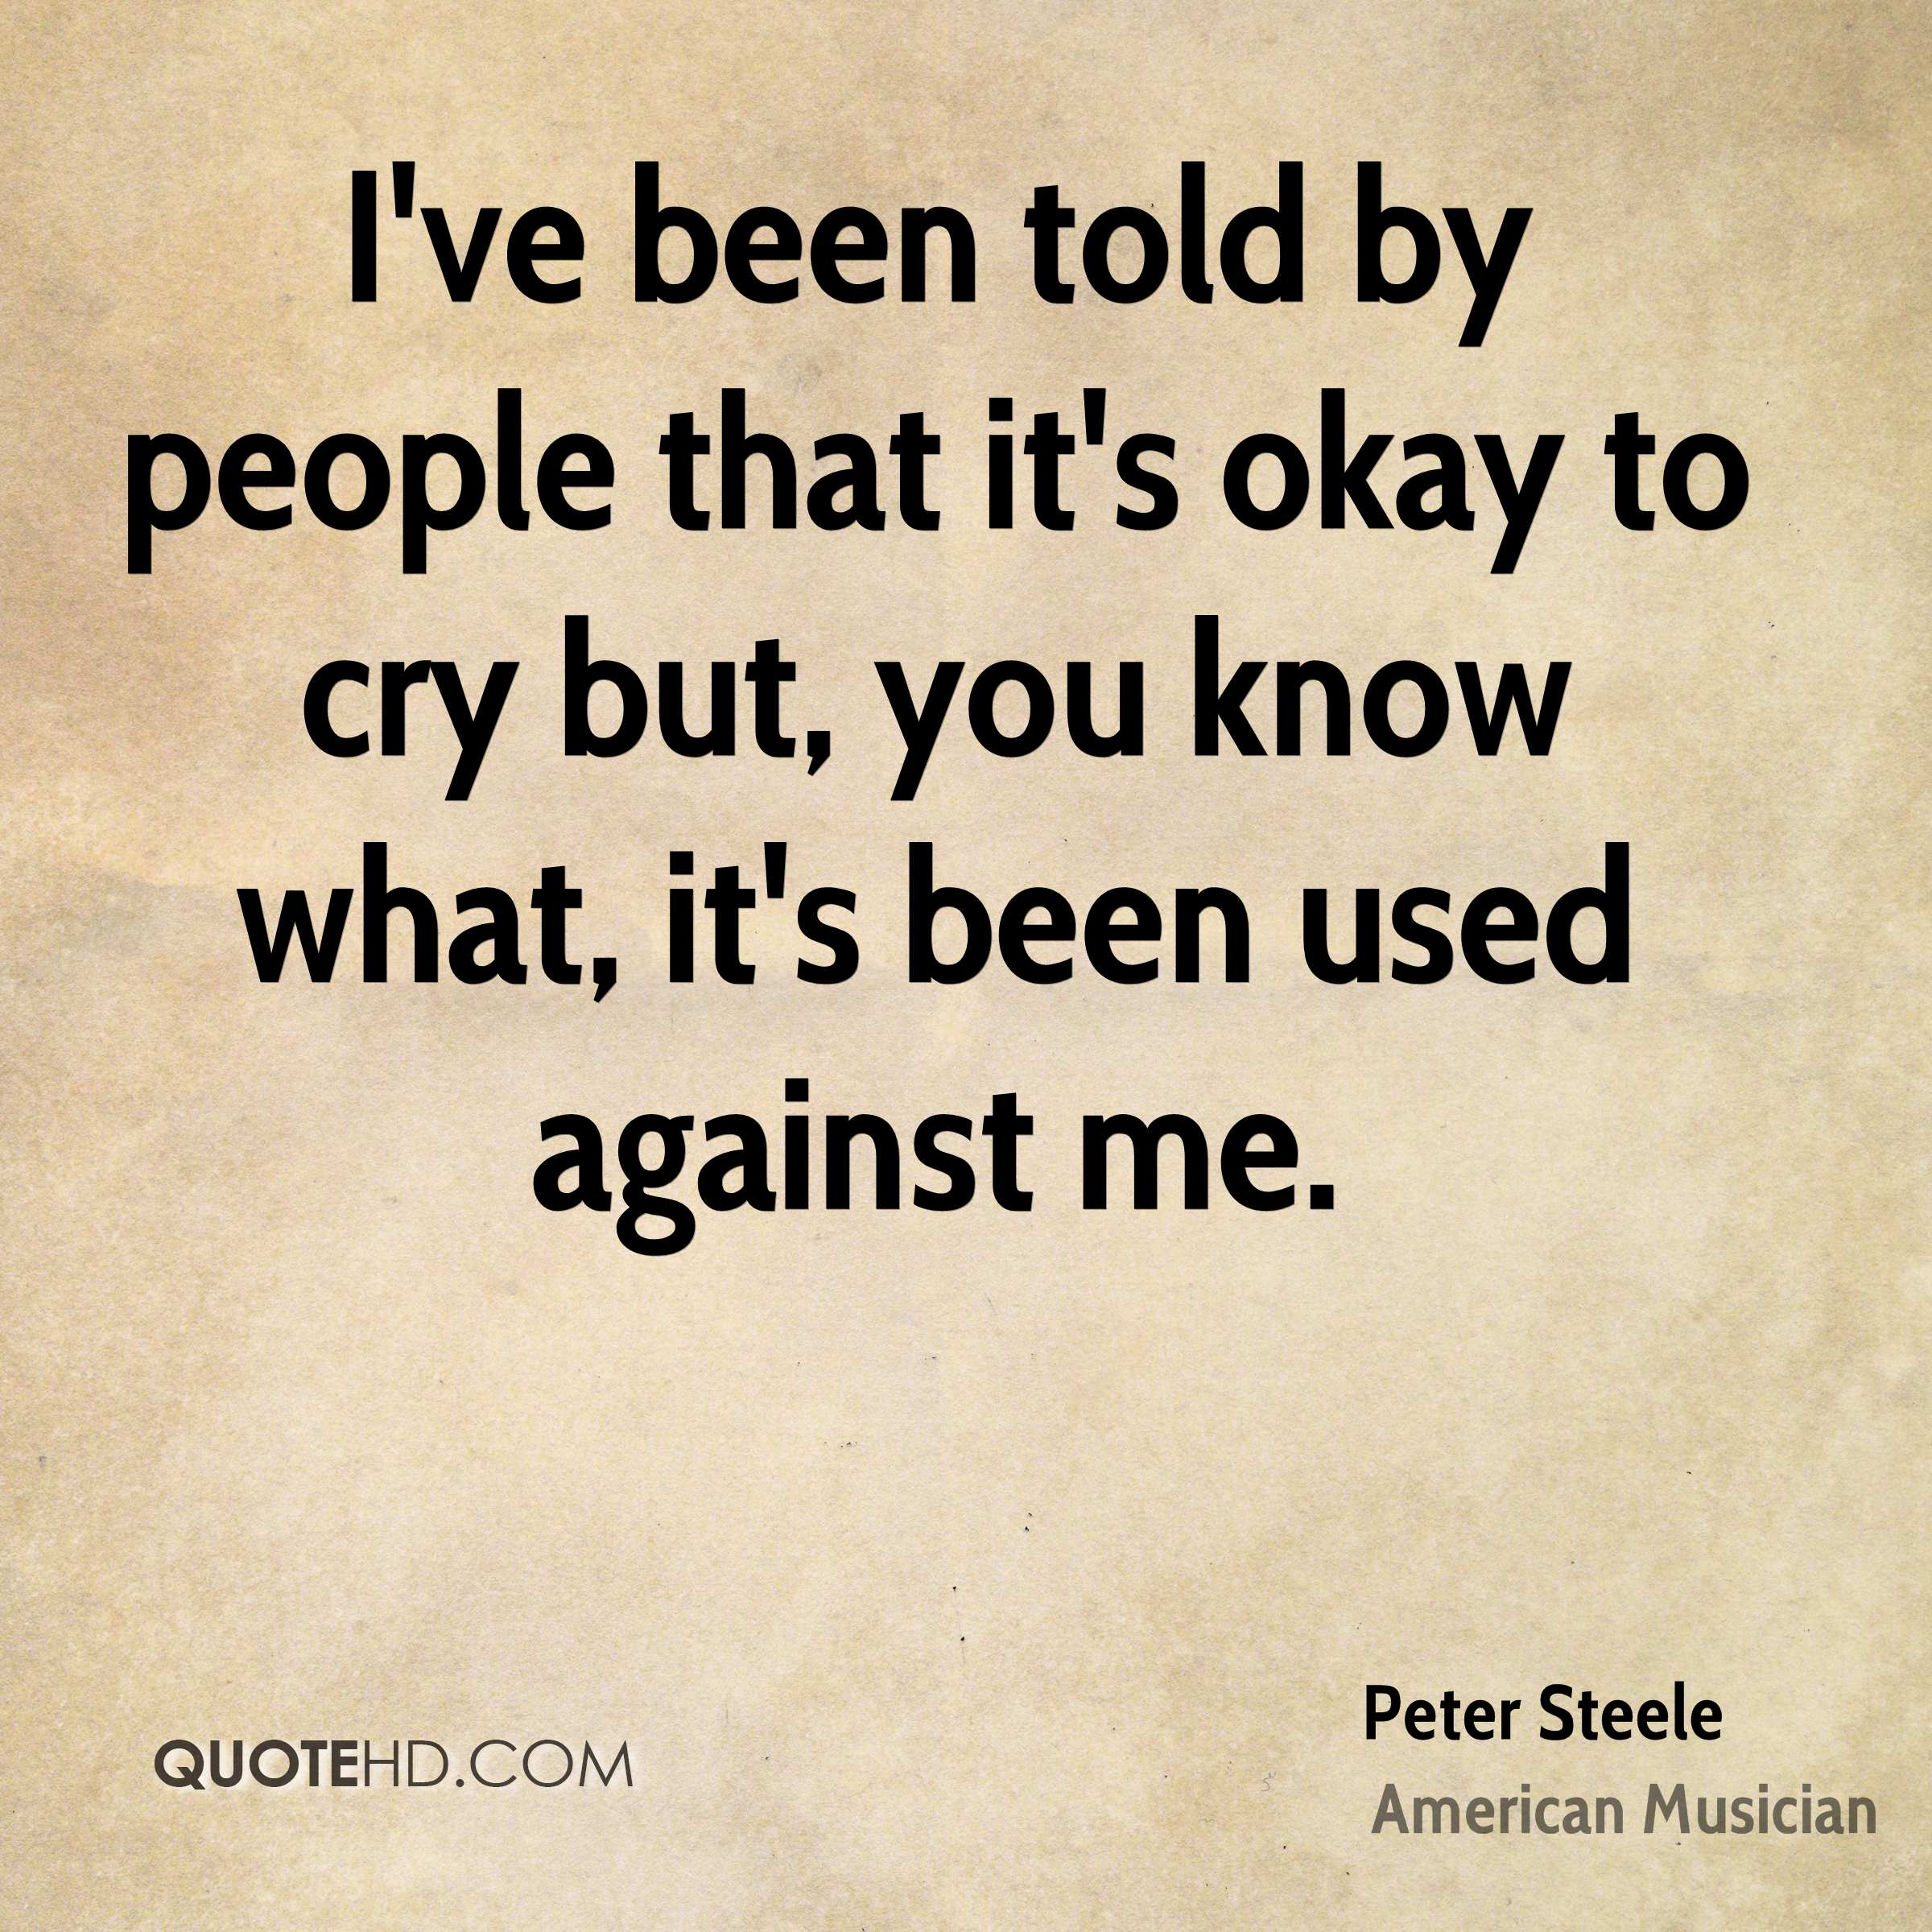 I've been told by people that it's okay to cry but, you know what, it's been used against me.